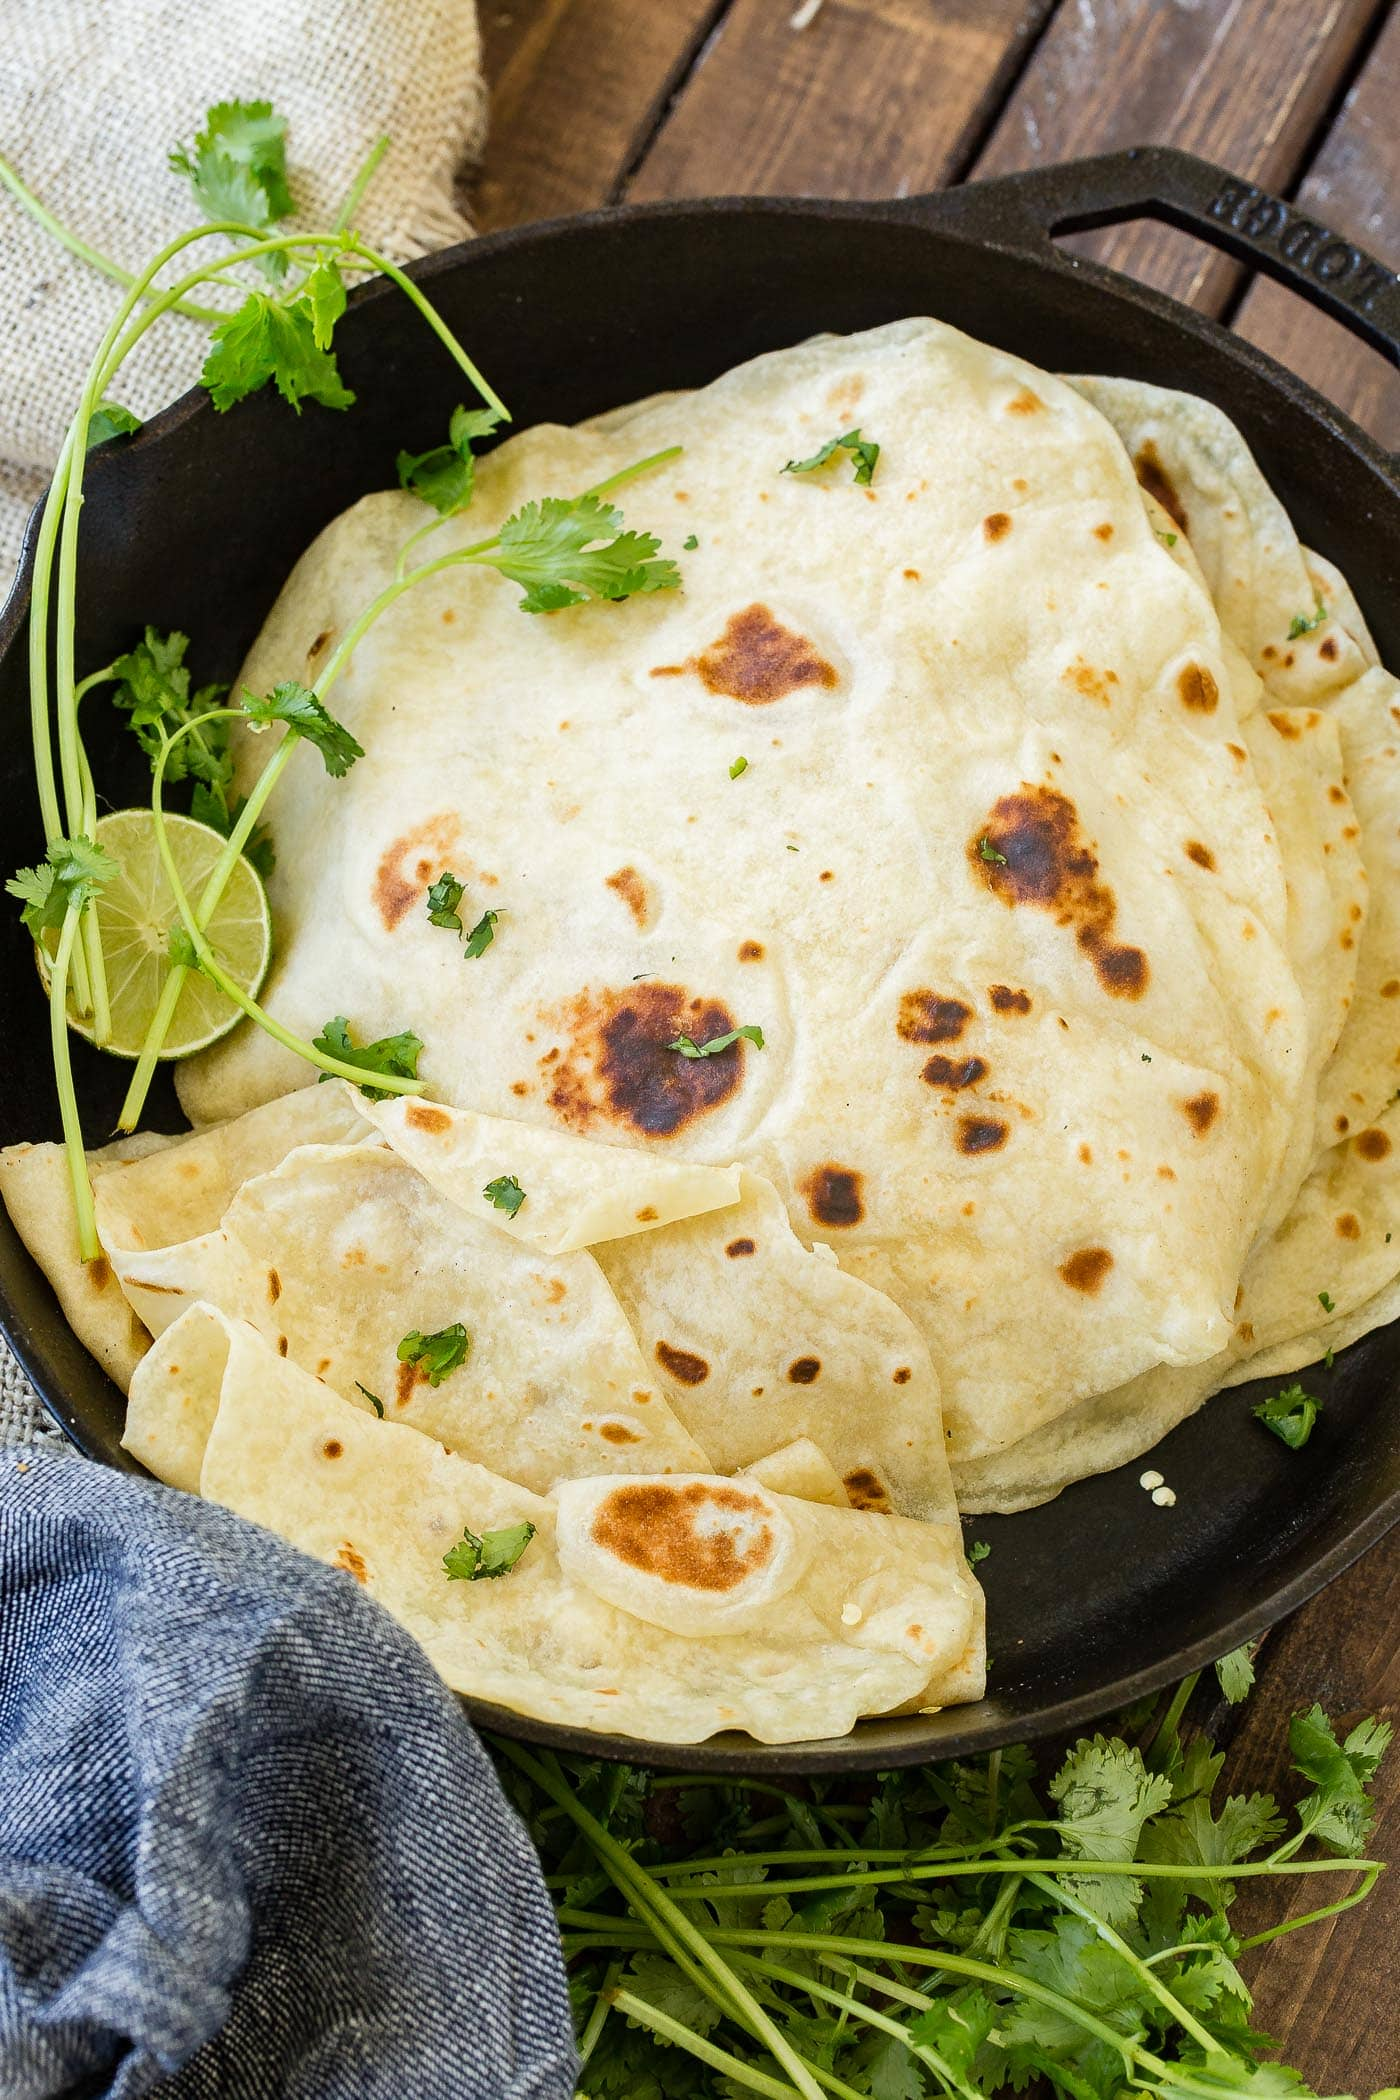 A photo of a stack of cooked homemade flour tortillas in a cast iron skillet.